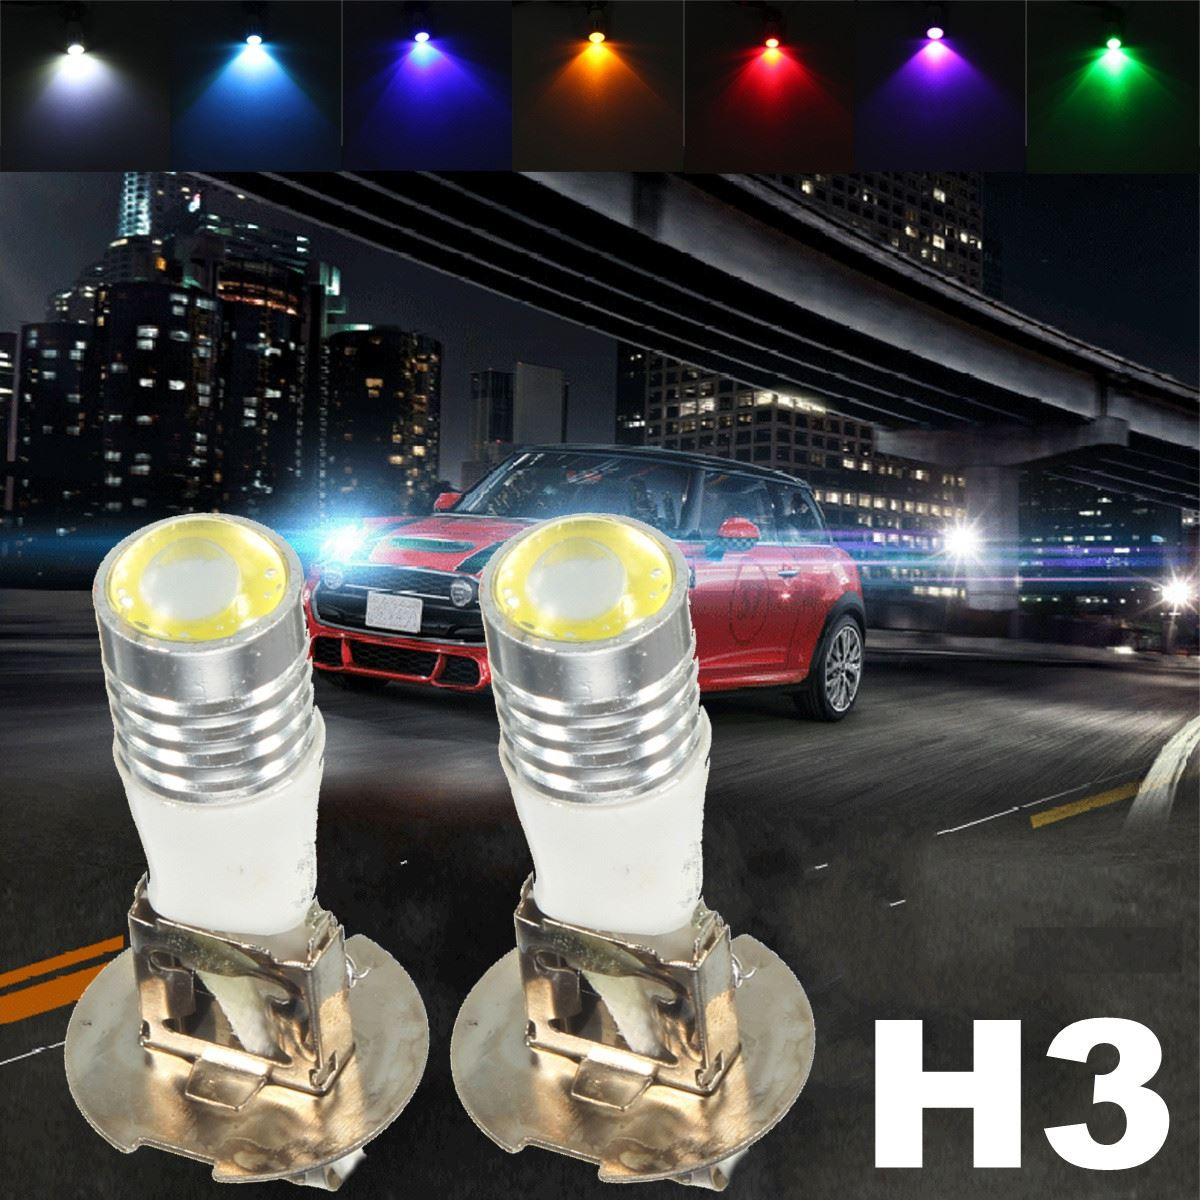 12V DC H3 11W COB LED Projector Driving DRL Fog Lights Car Headlight Lamp Bulb White Green Yellow Pink Red Blue Ice Blue car cob led h7 bulb fog light parking lamp bulbs driving foglight 7 5w drl 2pcs amber yellow white red ice blue